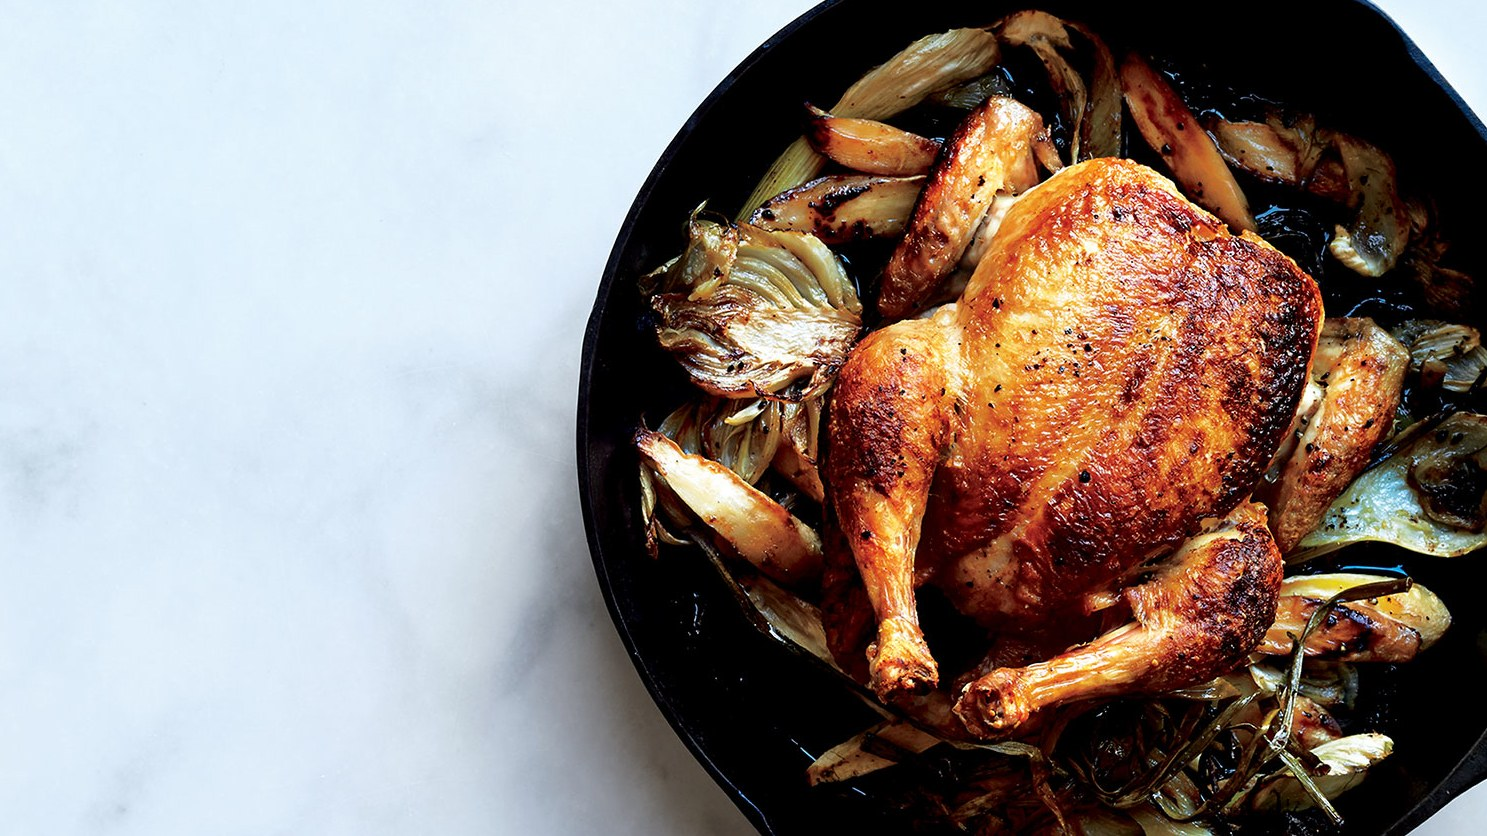 skillet-roast-chicken-with-fennel-parsnips-and-scallions (1).jpg